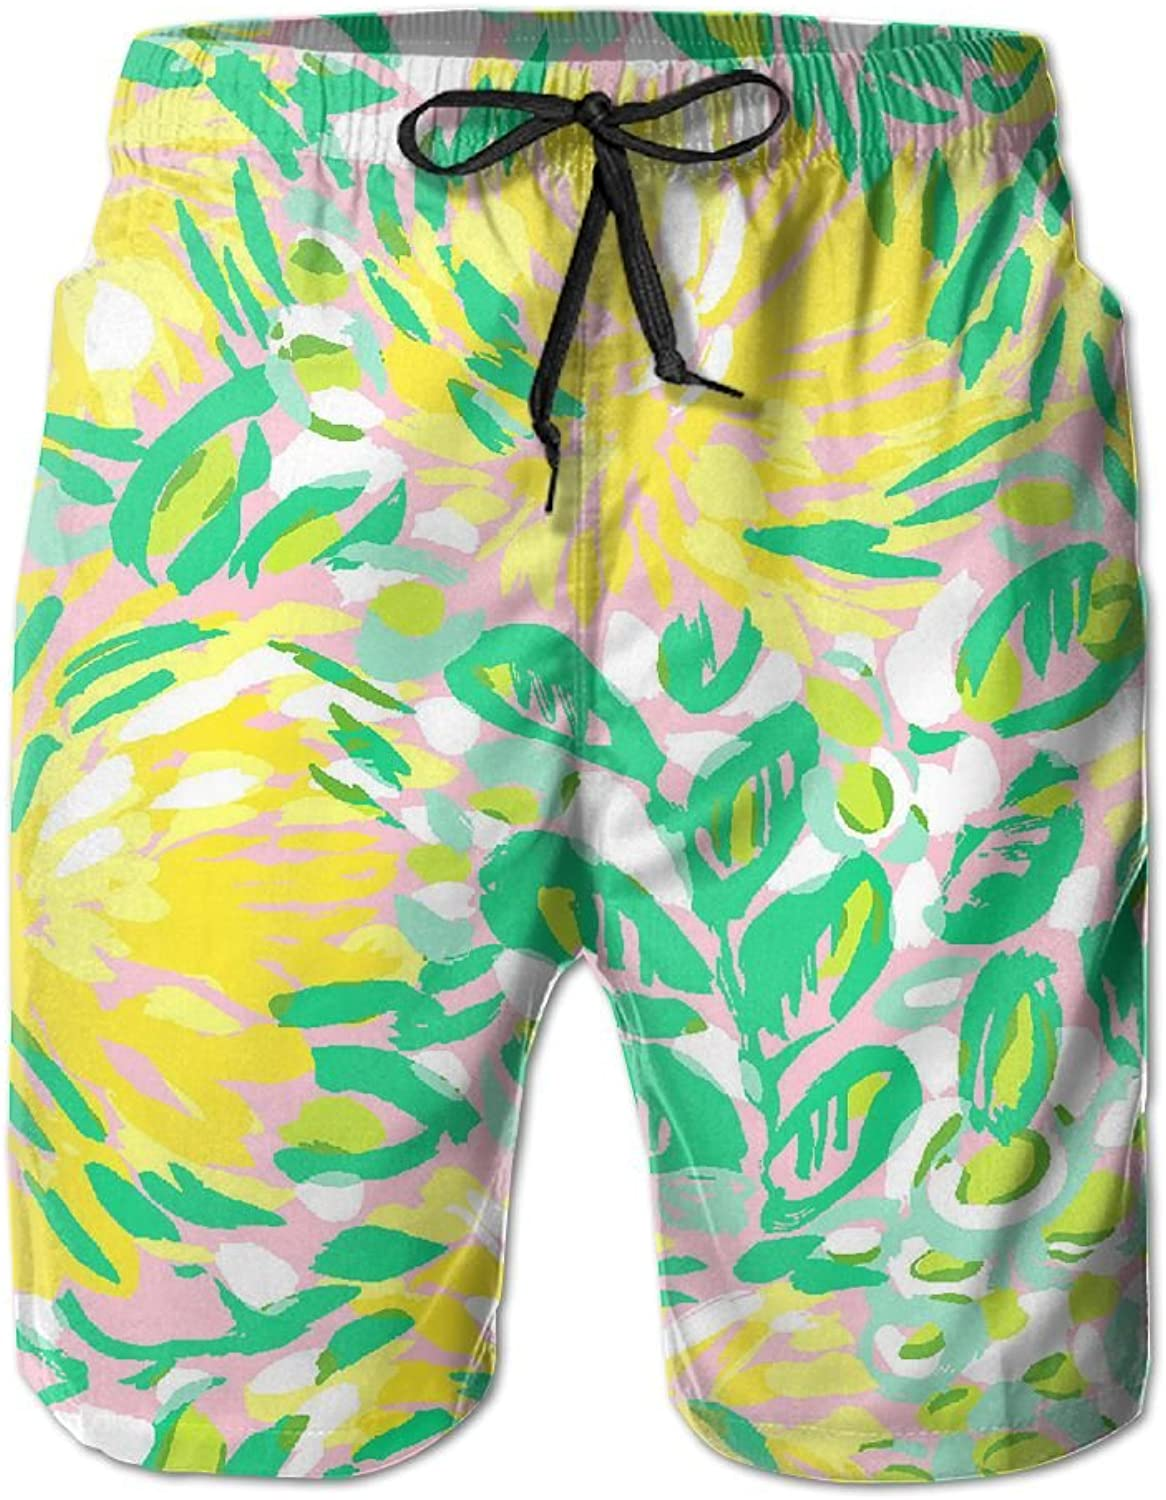 00206b305a0be Quick Dry Men's Beach Board Shorts Shorts Shorts Yellow Green Watercolor  Painting Surfing Swim Trunks Beachwear With Pockets 5f39ca